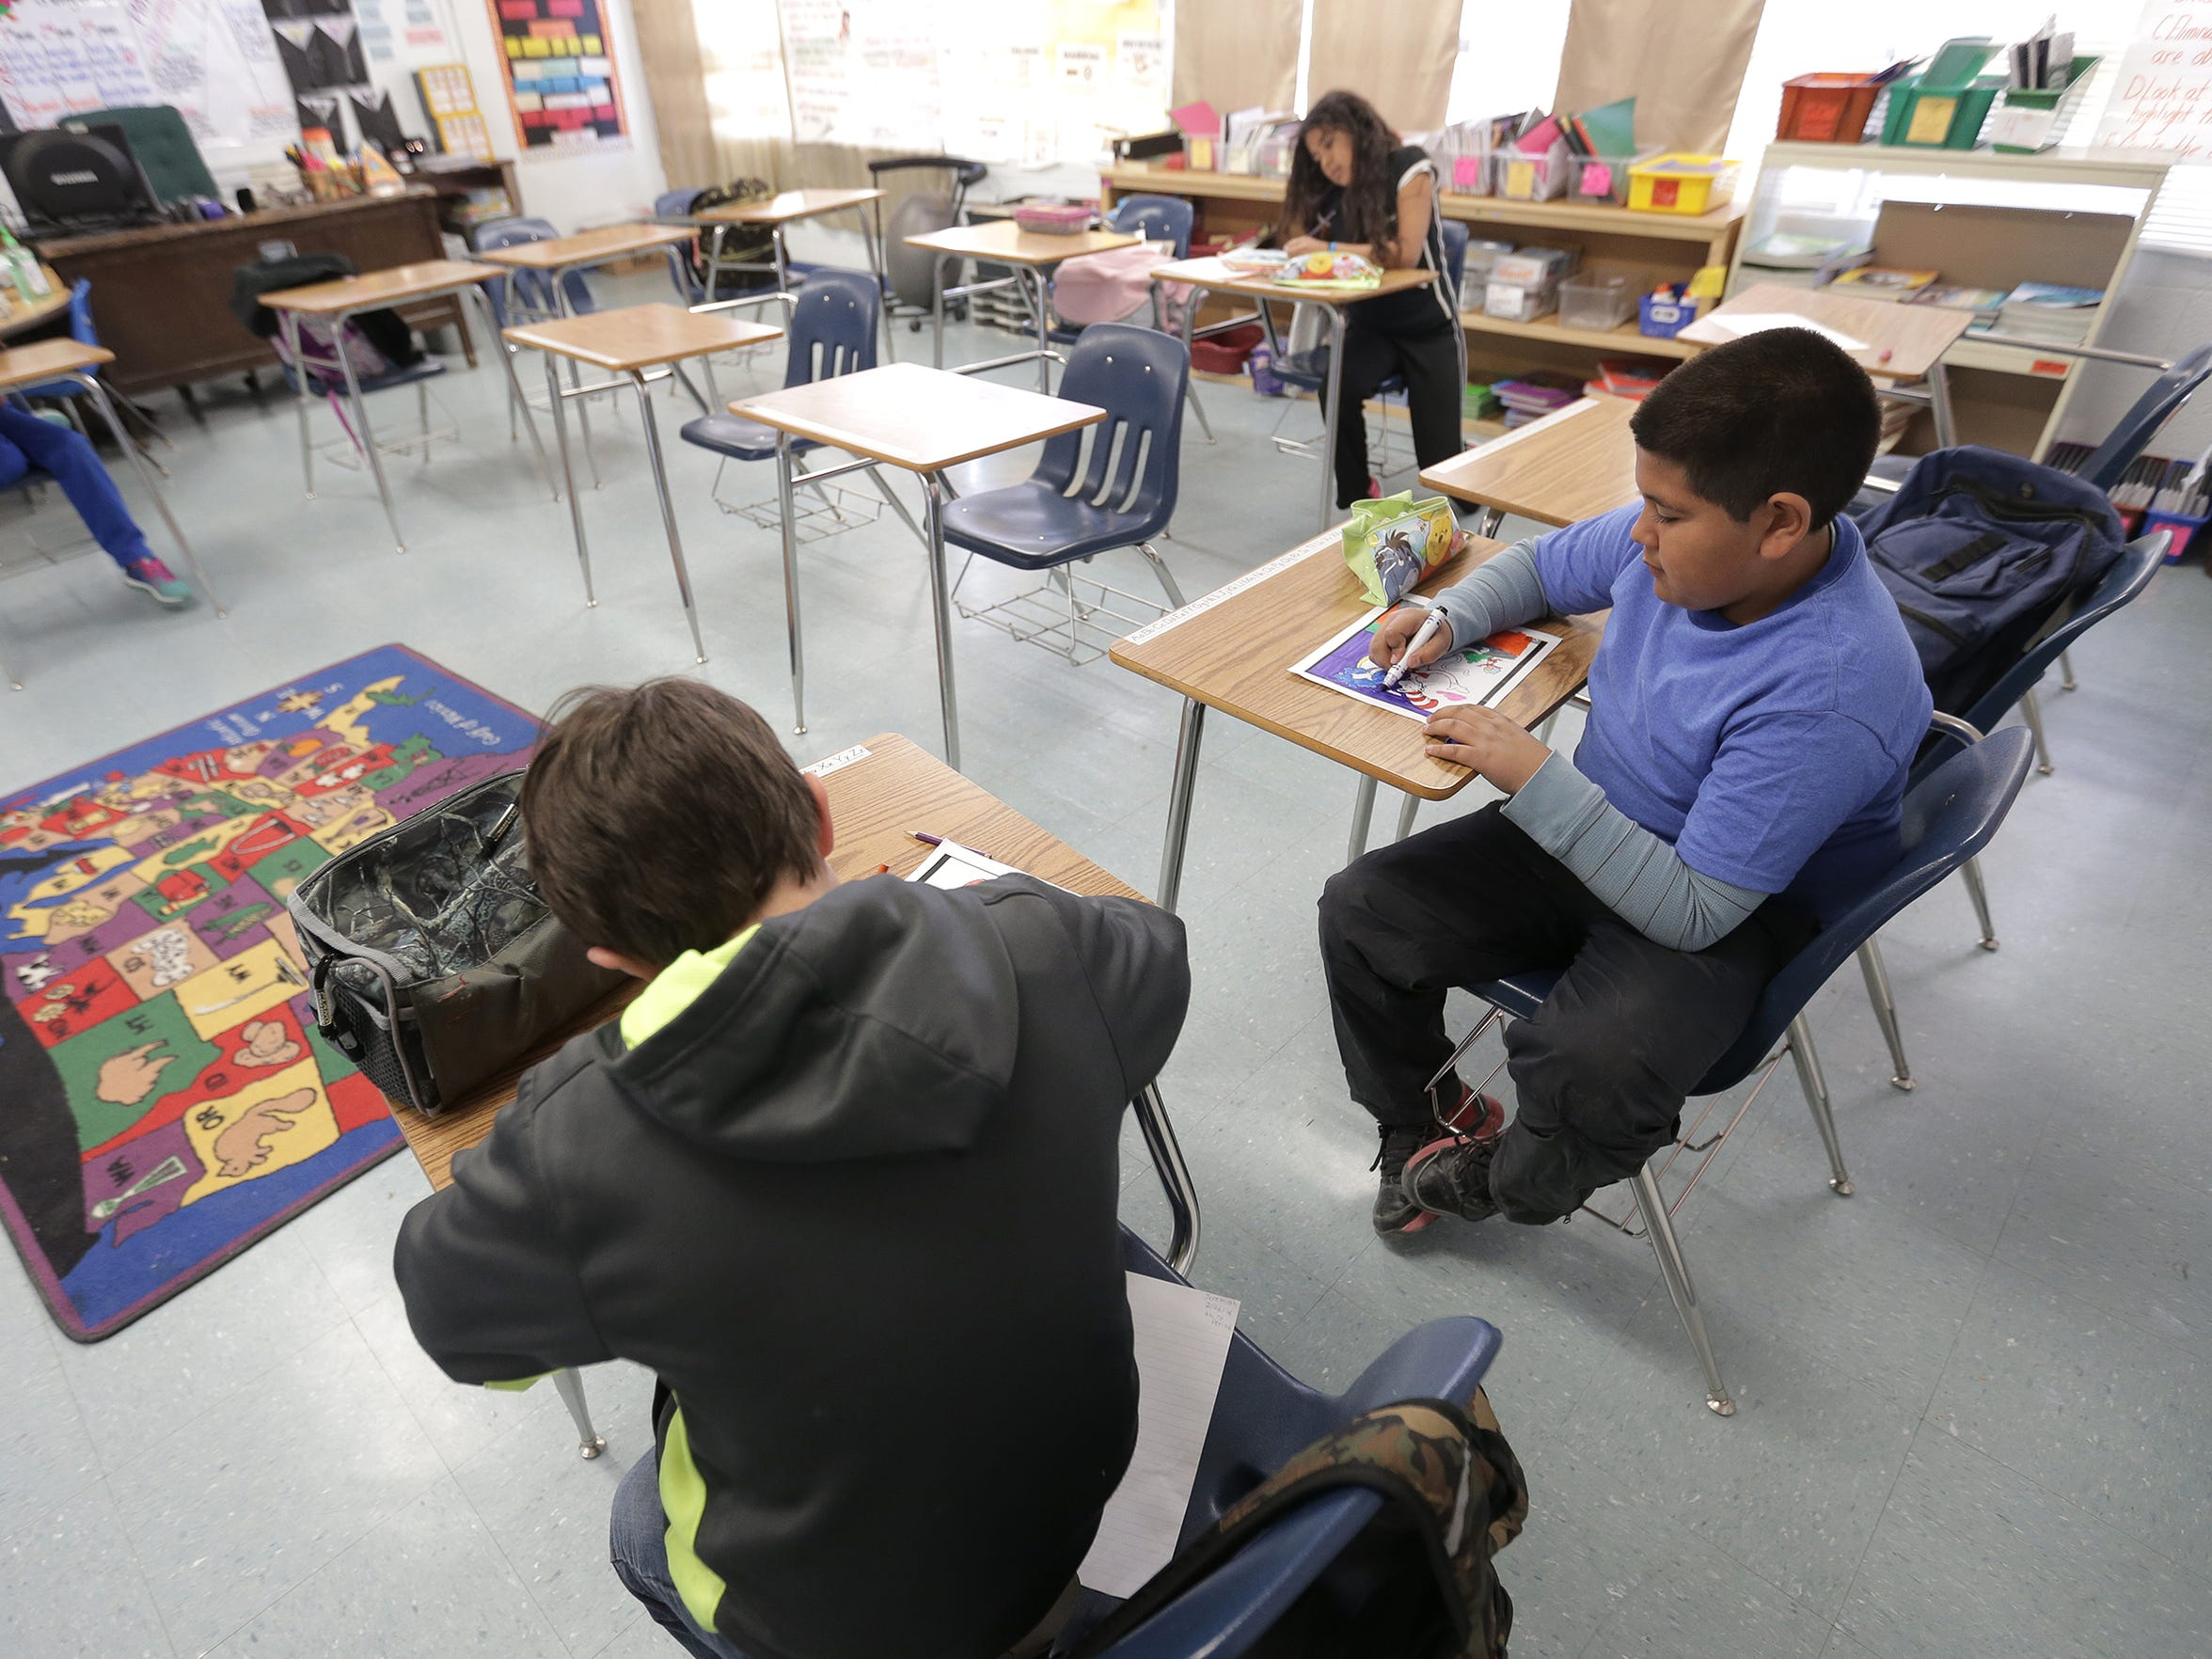 More desks are empty nowadays at Dell City School. With declining enrollment, elementary-level classes have been combined with another class.